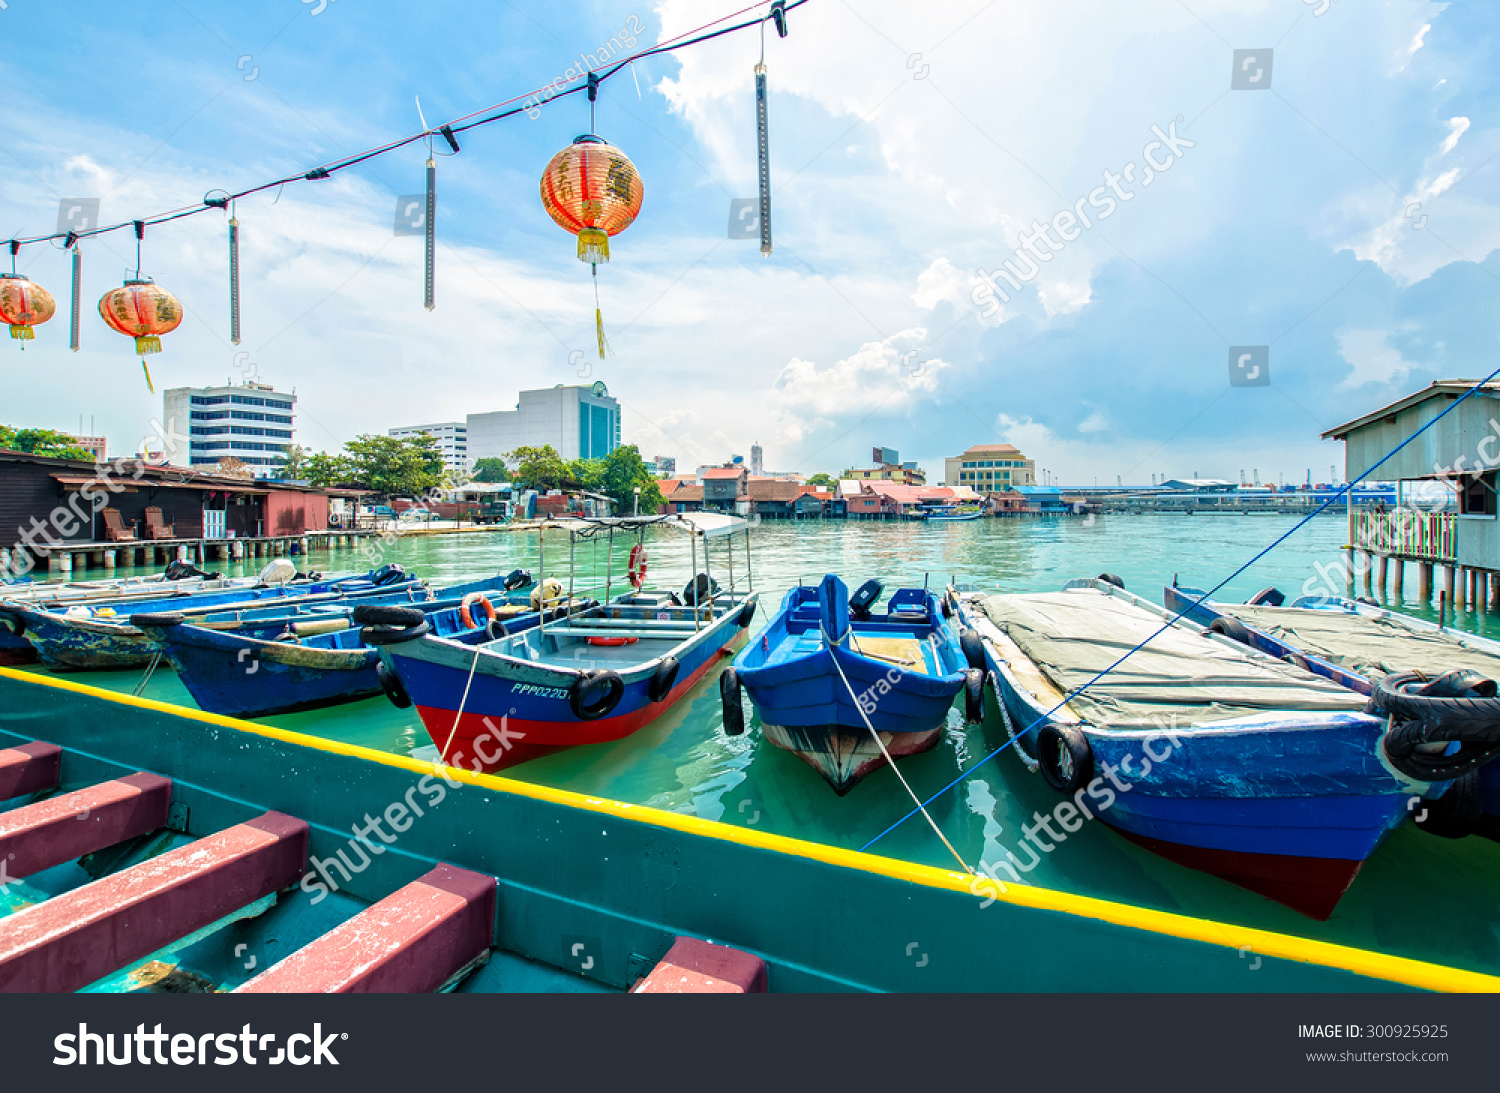 Penang Malaysia July 17 2015 Boats at the Chew Jetty which is one of the UNESCO World Heritage Site in Penang